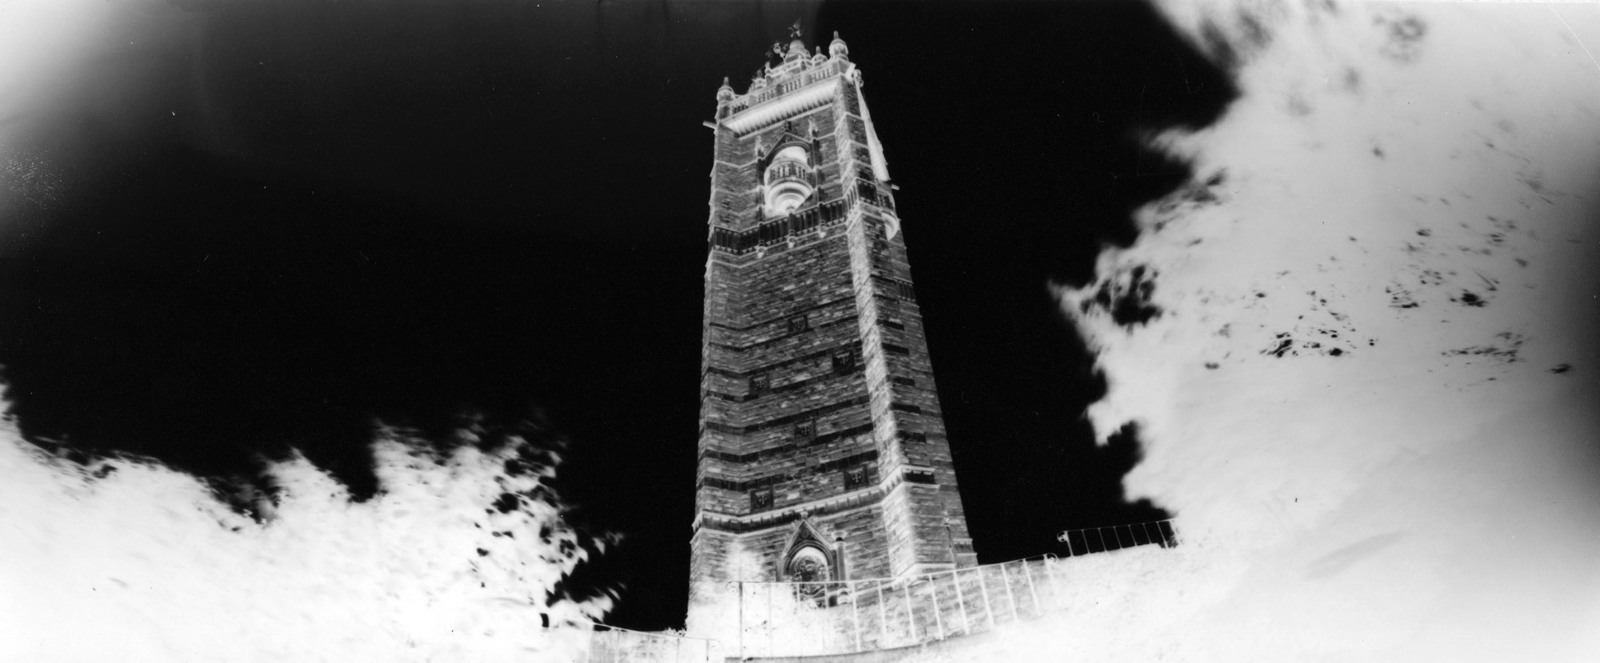 6. Cabot Tower